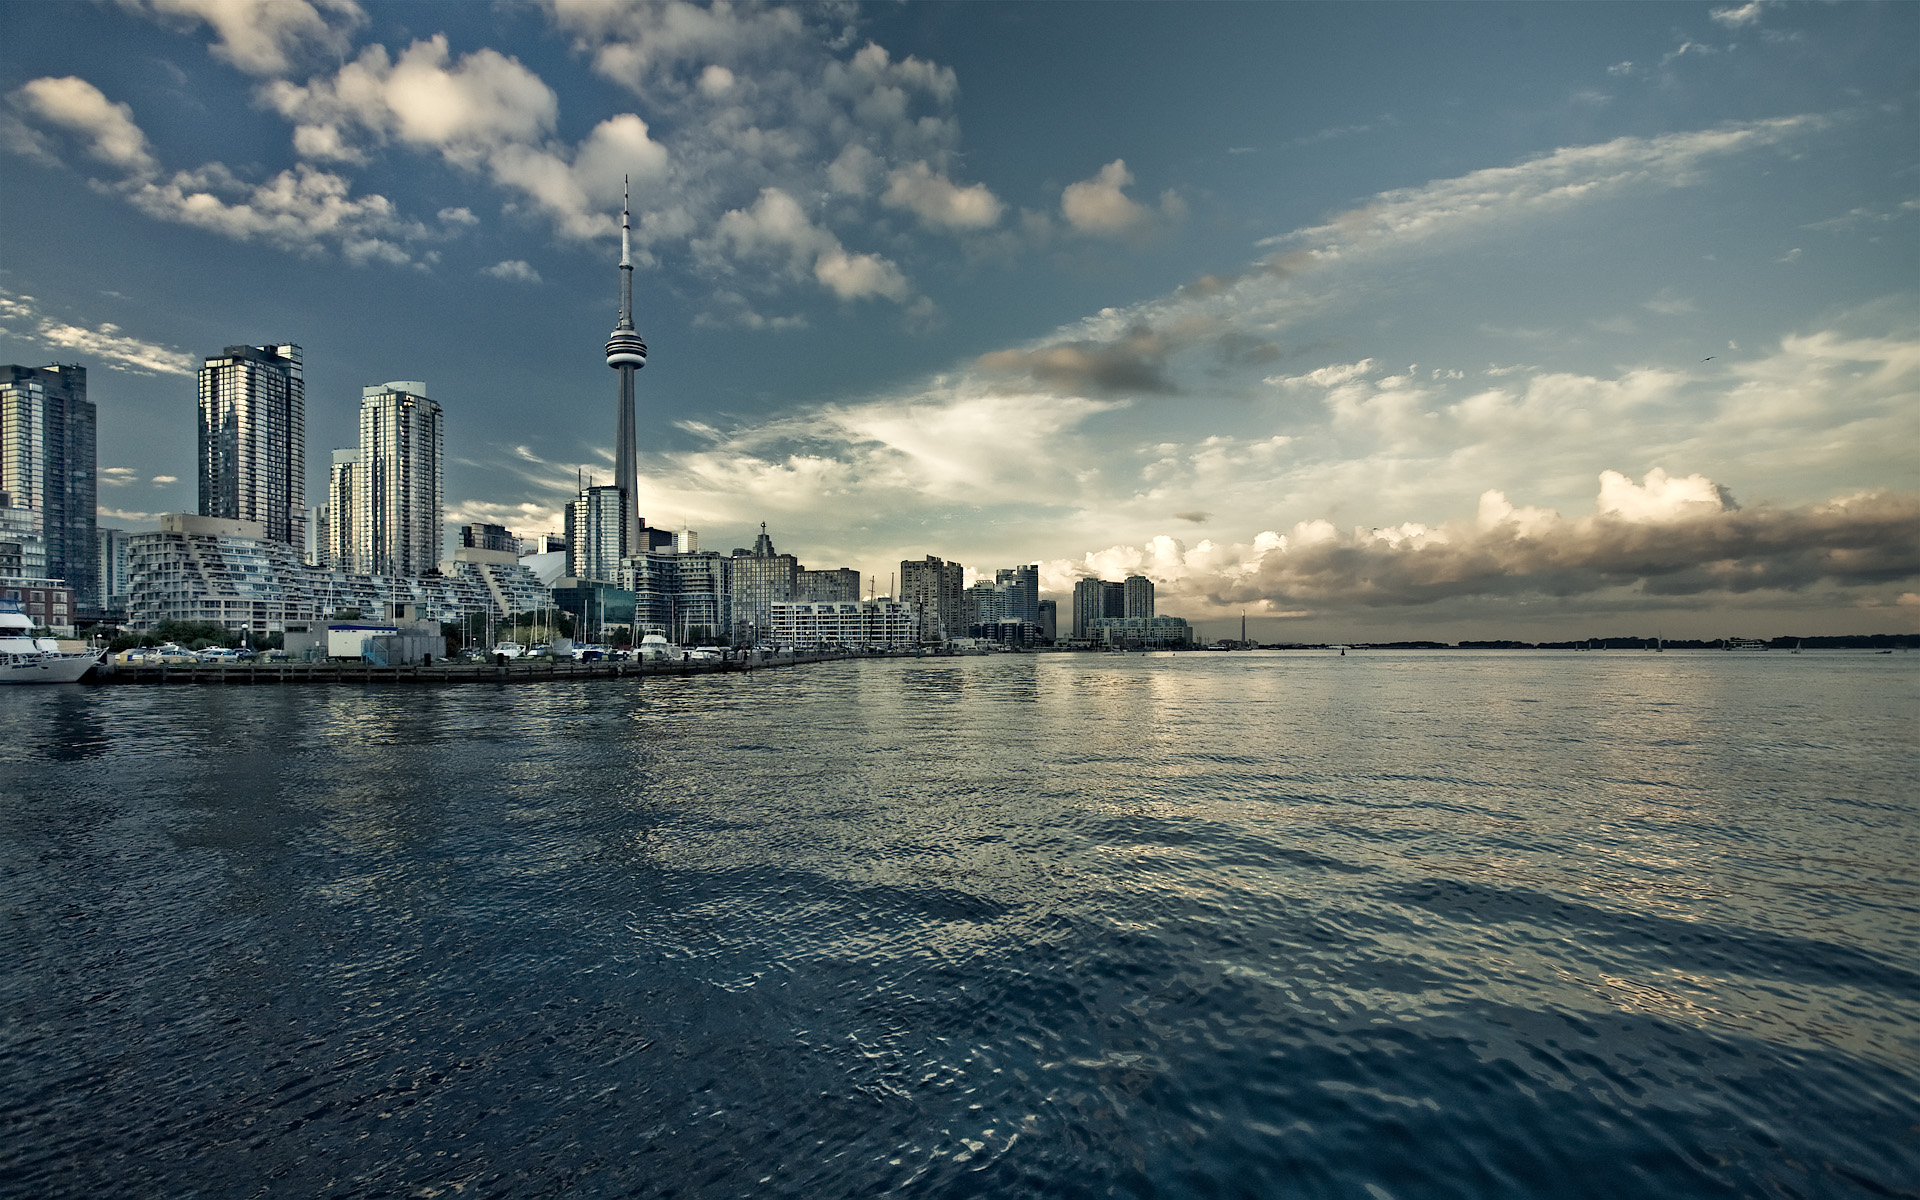 The Cars 2 Wallpaper Daily Wallpaper Toronto Skyline I Like To Waste My Time